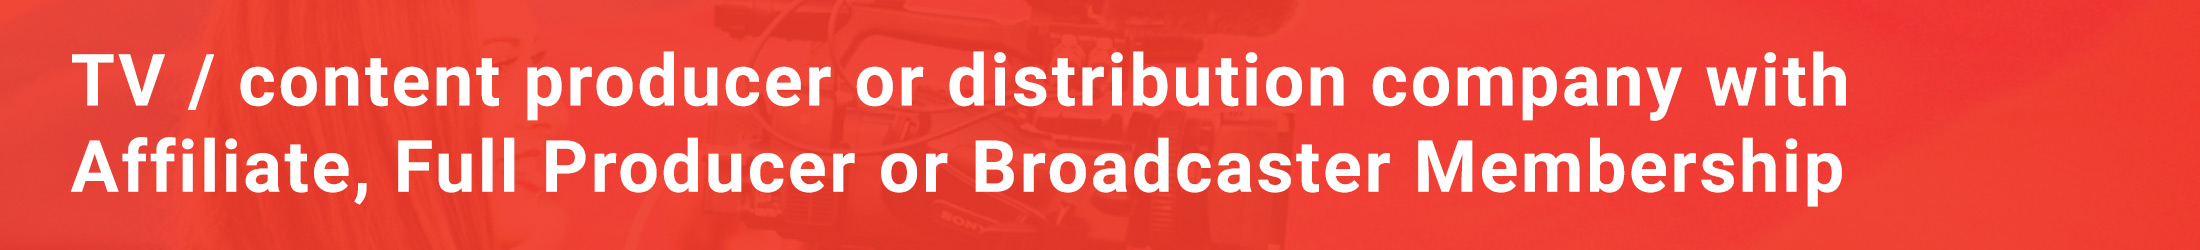 TV / content producer or distribution company with Affiliate, Full Producer or Broadcaster Membership